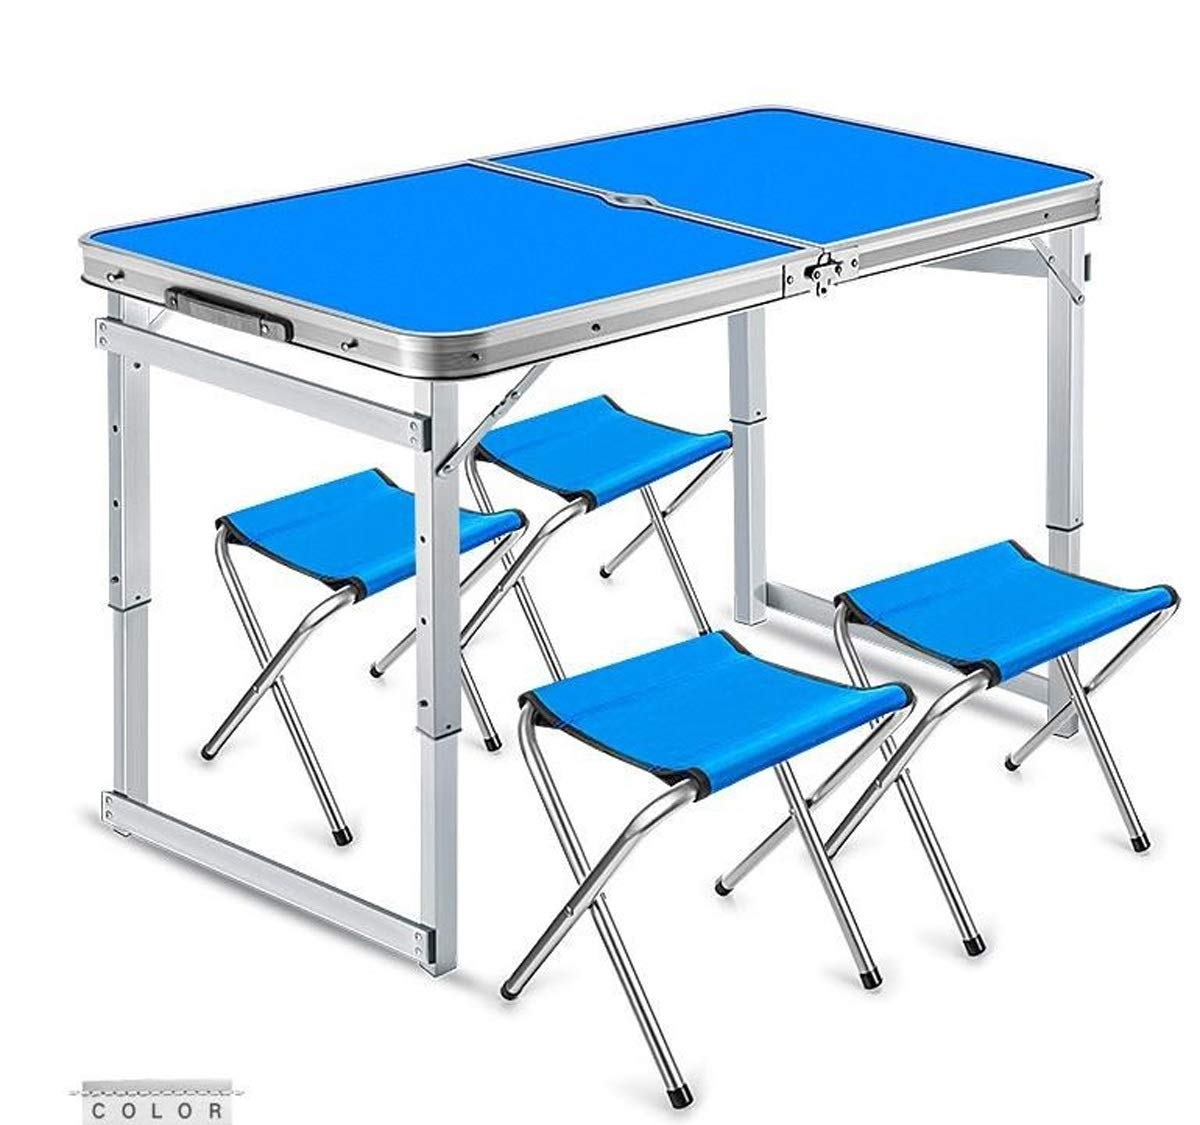 Baianju Portable Portable Folding Table Aluminum Folding Table Desktop Floor Table Outdoor Picnic Table Table by Baianju